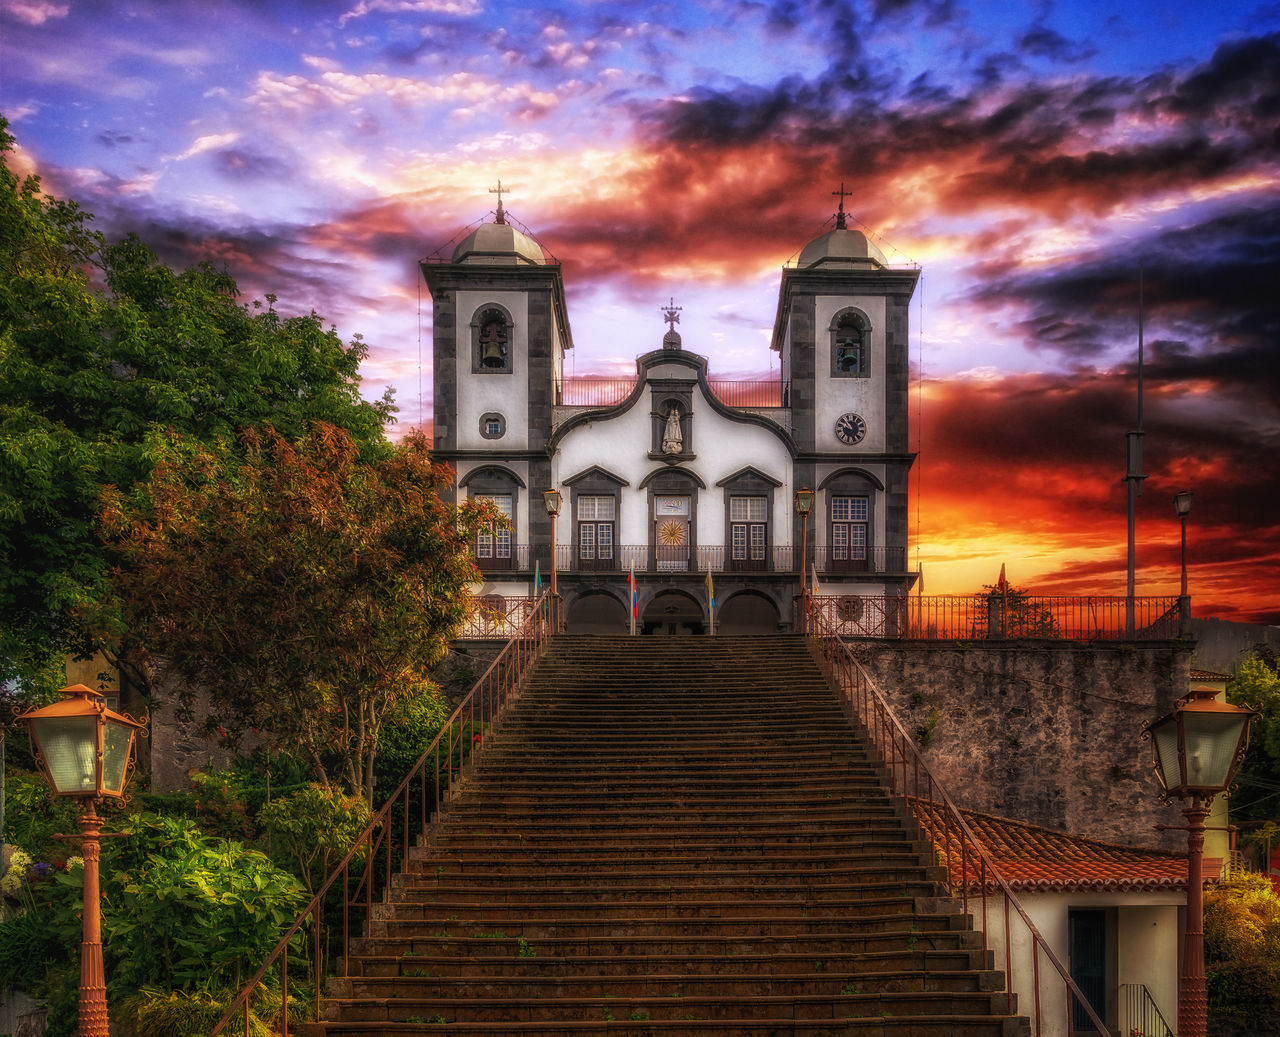 Architecture Bell Towers Building Church Cloud - Sky Day Freitreppe Madeira No People Nossa Senhora Do Monte Pilgrimage Church Potugal Religion Sky Stairway Sunrise Tree